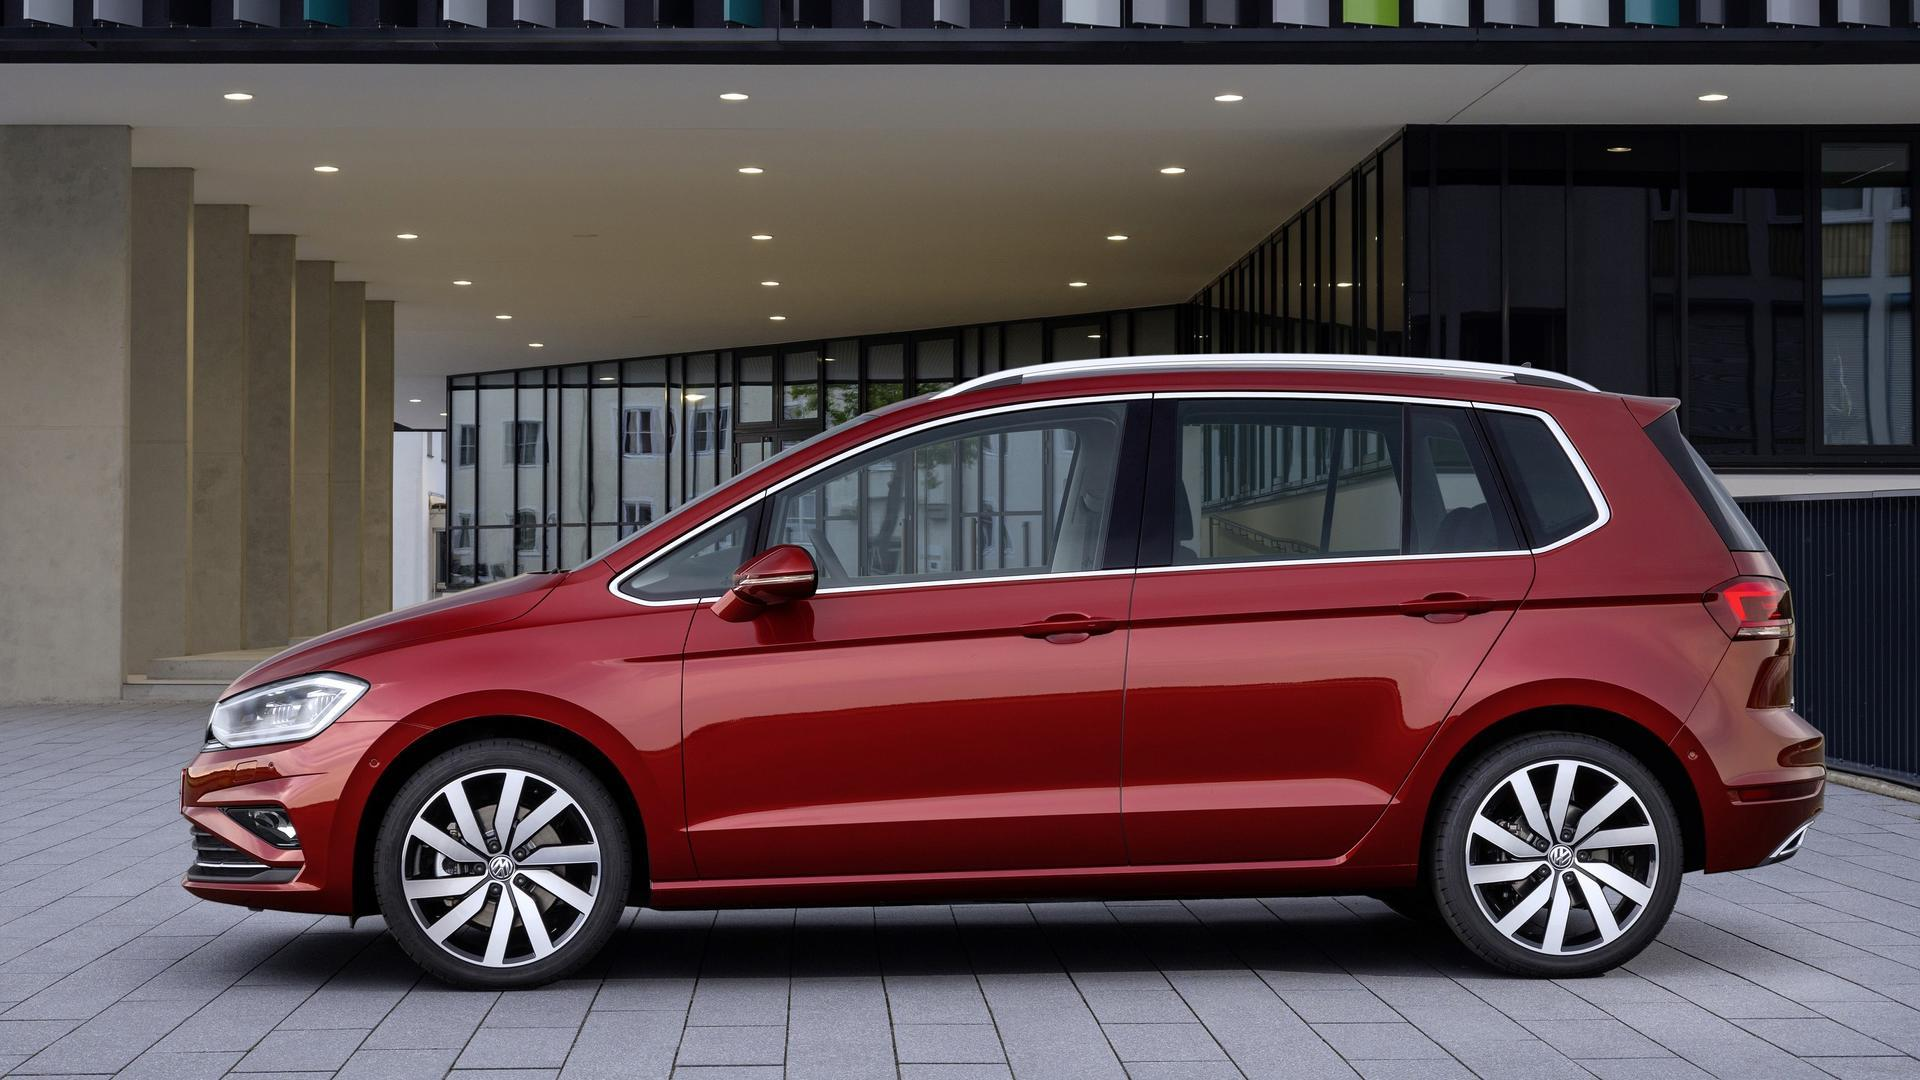 Volkswagen Golf SV gets a refresh for 2018